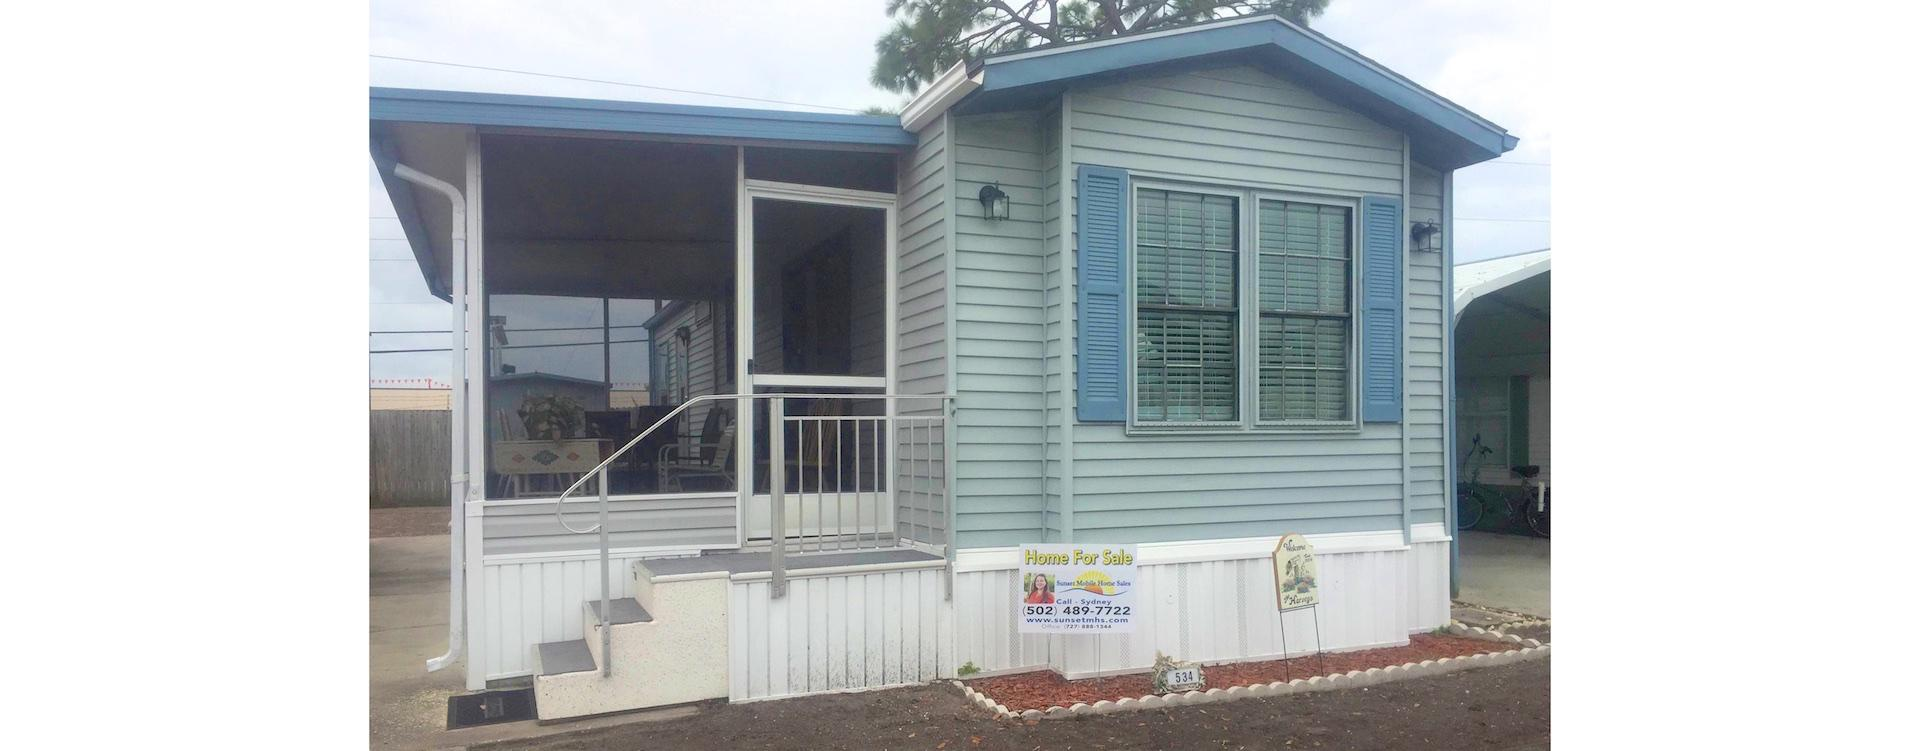 Mobile Home For Sale - Largo, FL Rainbow Village #534 on